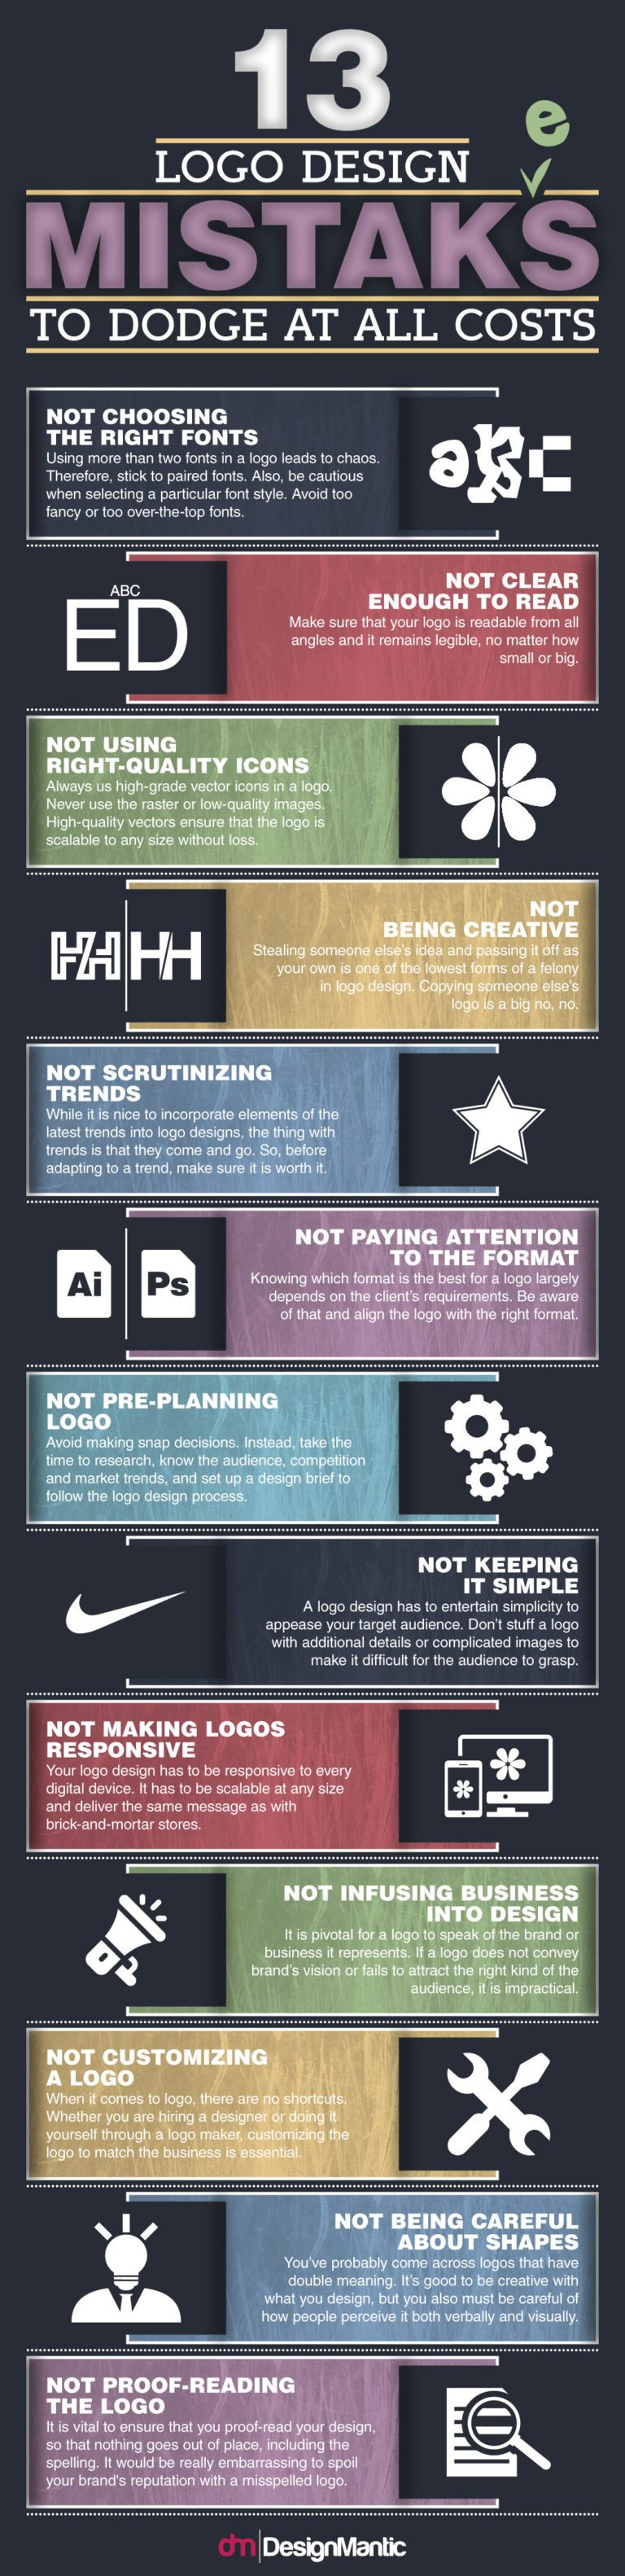 13 Pitfalls in Logo Design to Watch Out For - Infographic